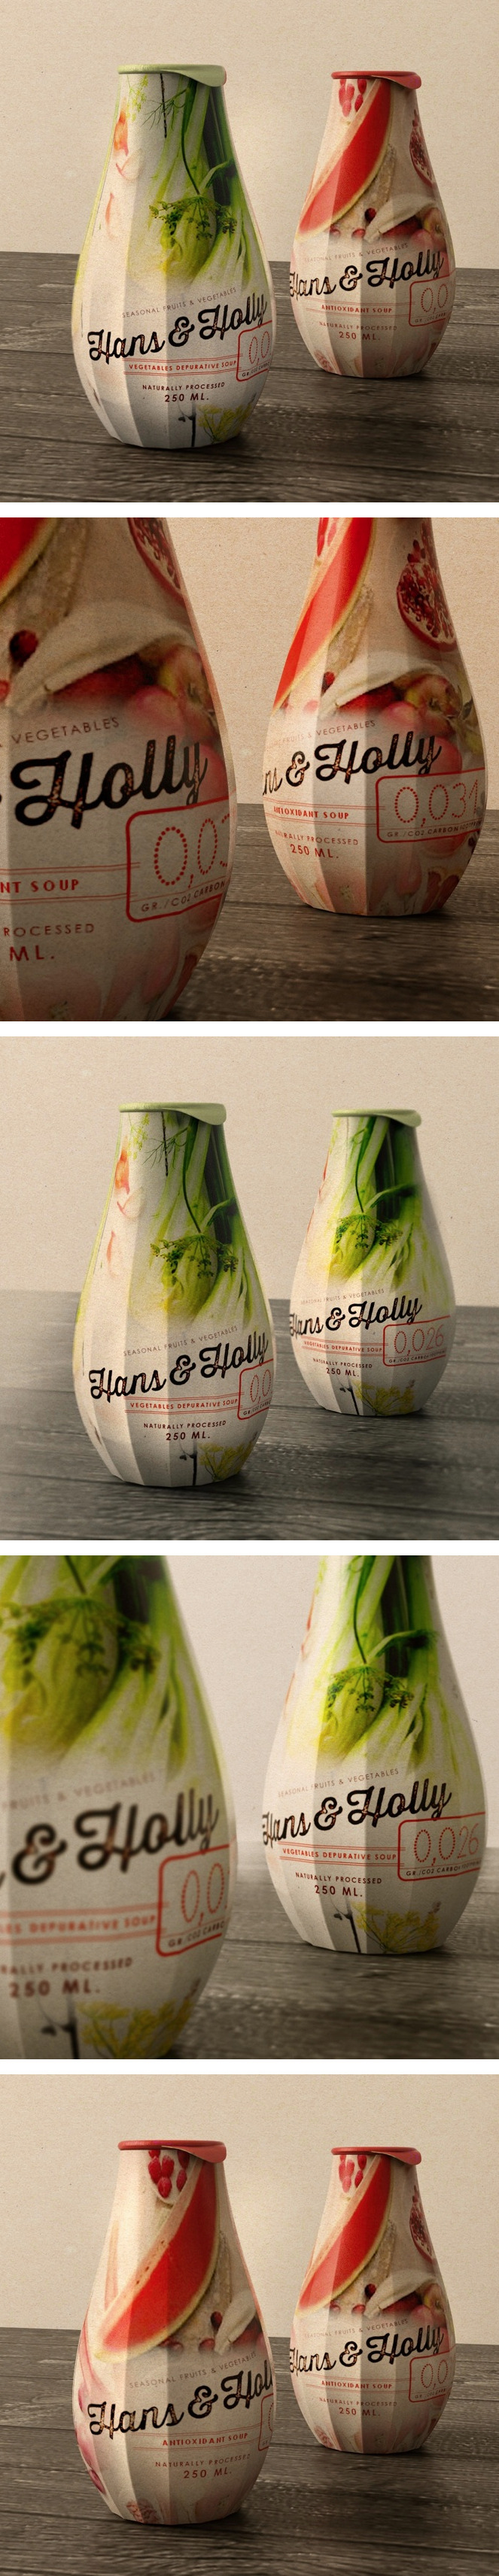 HANS & HOLLY Soups packaging #creative #packaging #design